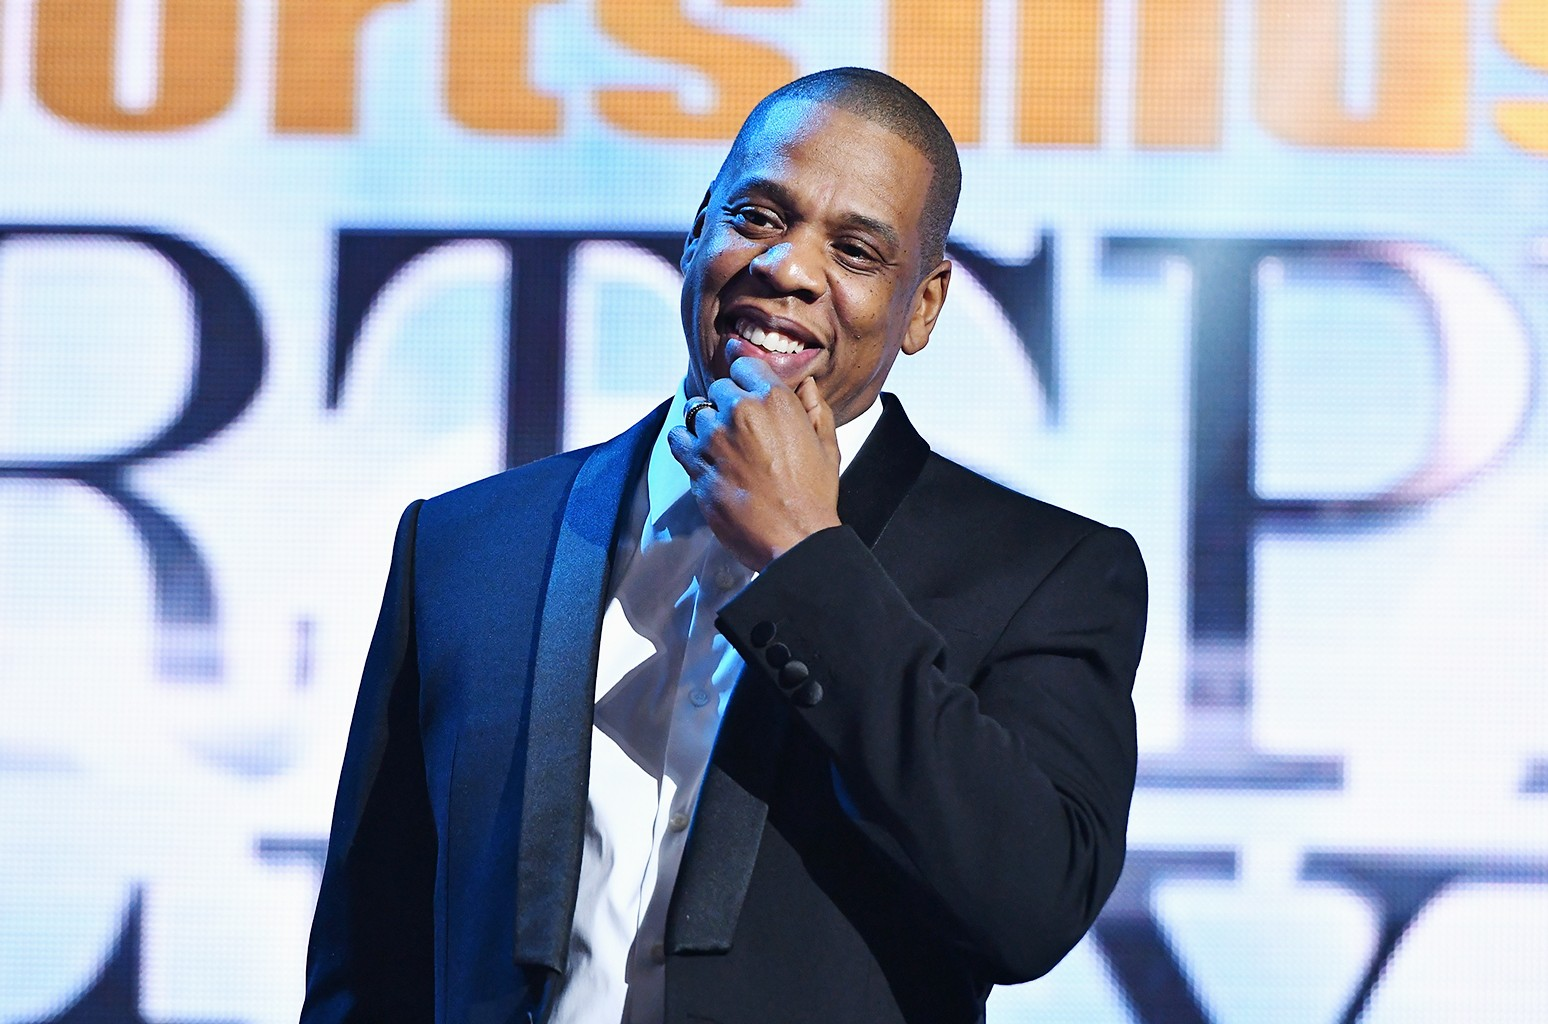 Jay Z speaks onstage during the Sports Illustrated Sportsperson of the Year Ceremony 2016 at Barclays Center of Brooklyn on Dec. 12, 2016 in New York City.